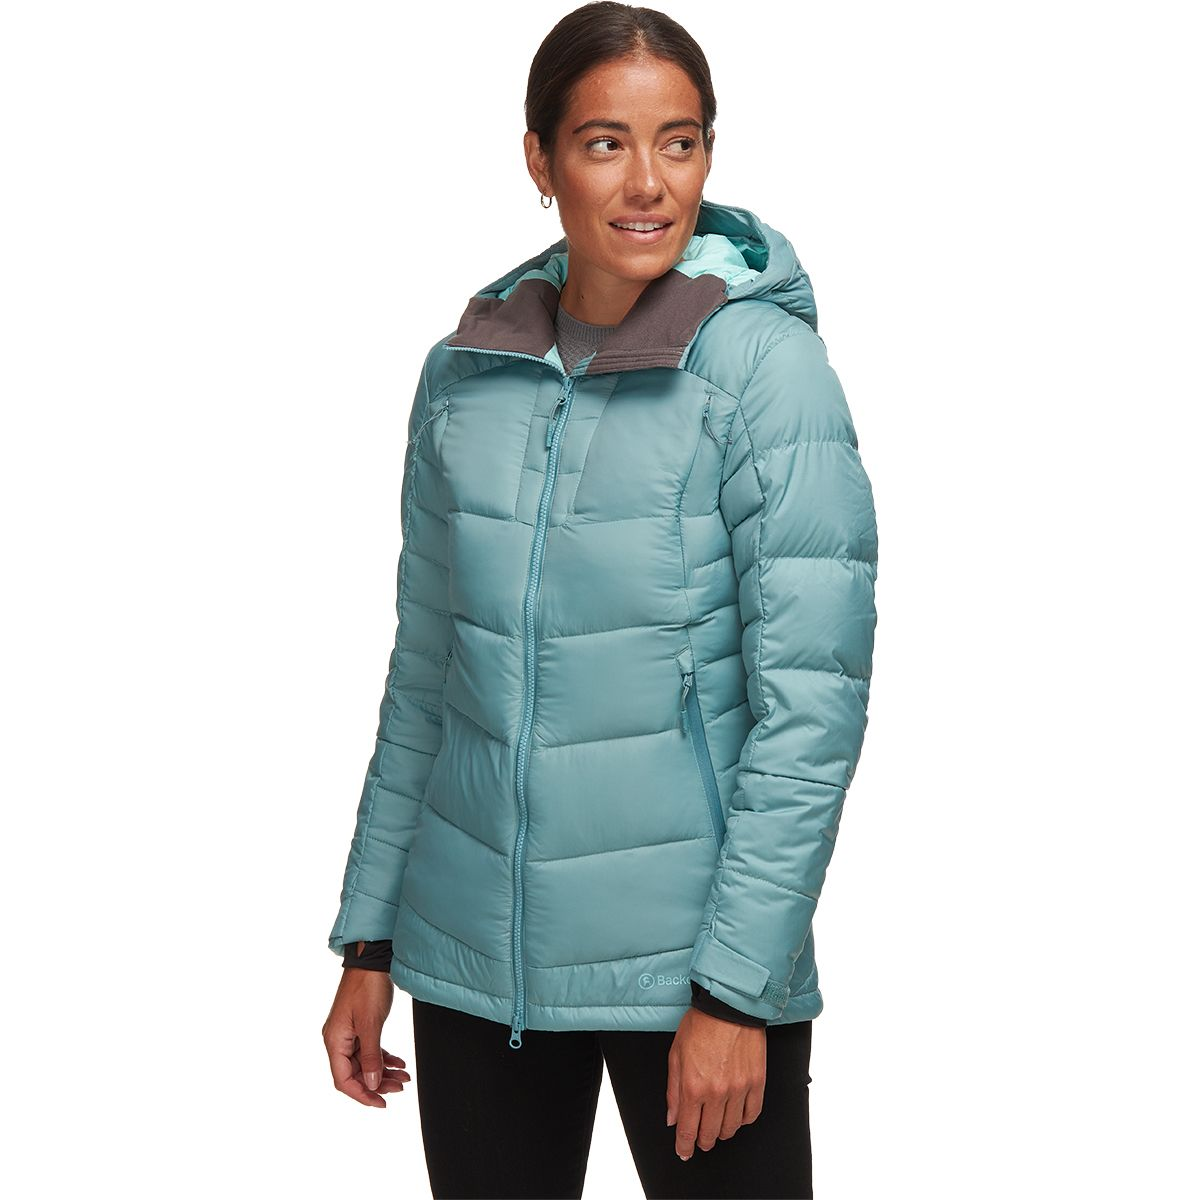 Outerwear for her